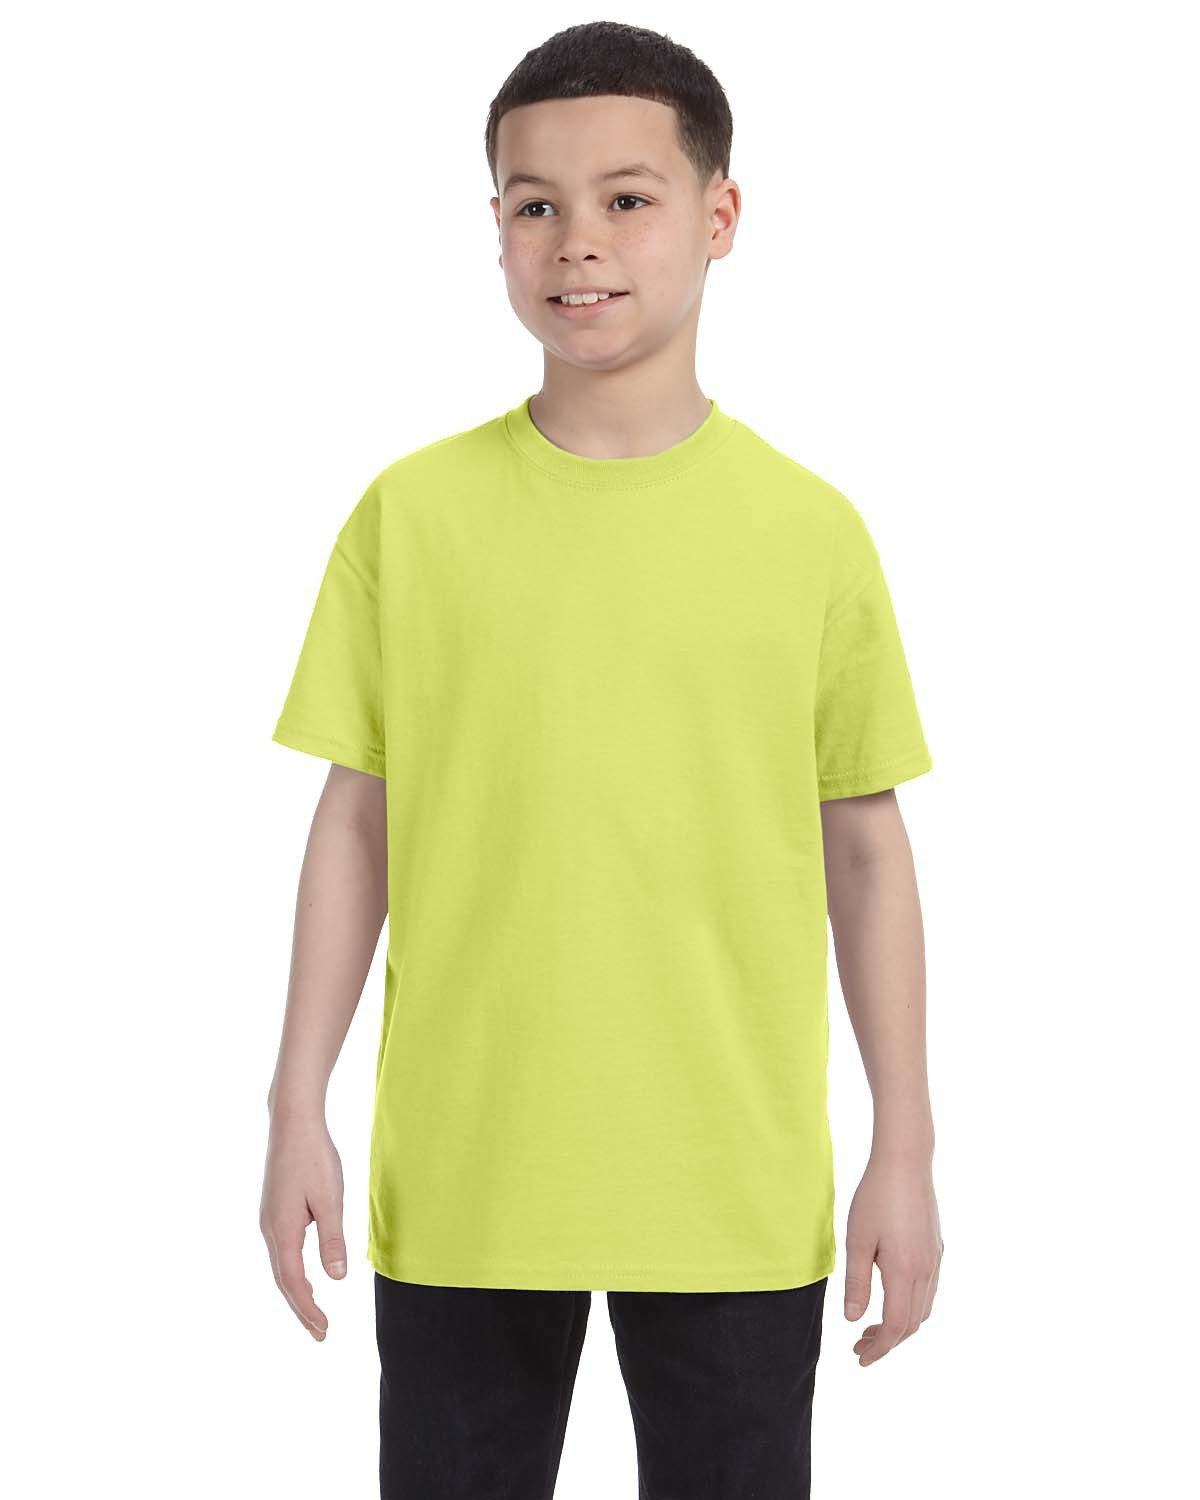 Jerzees Youth DRI-POWER® ACTIVE T-Shirt SAFETY GREEN